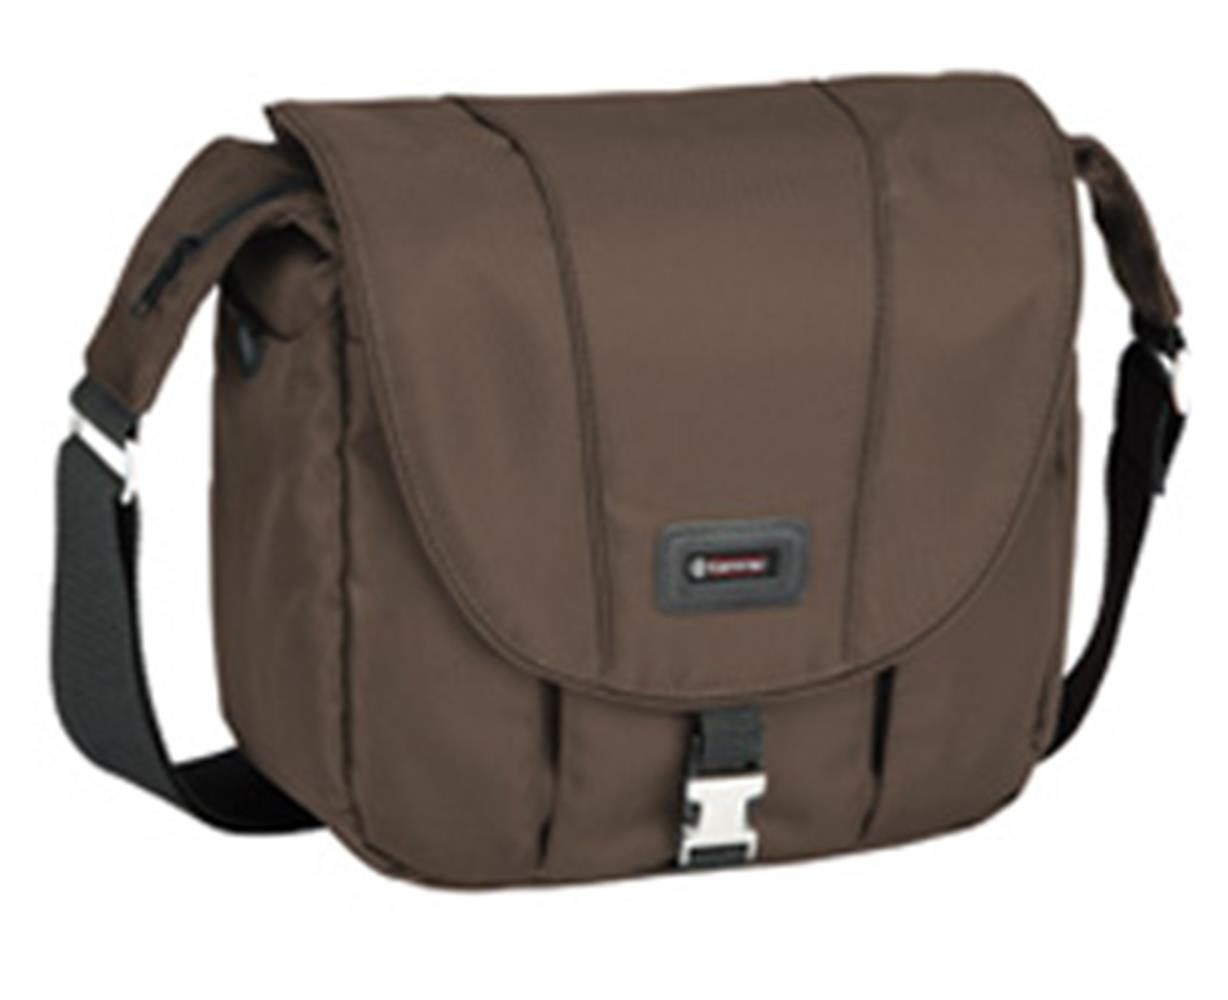 TAMRAC ARIA 3 CAMERA BAG BROWN